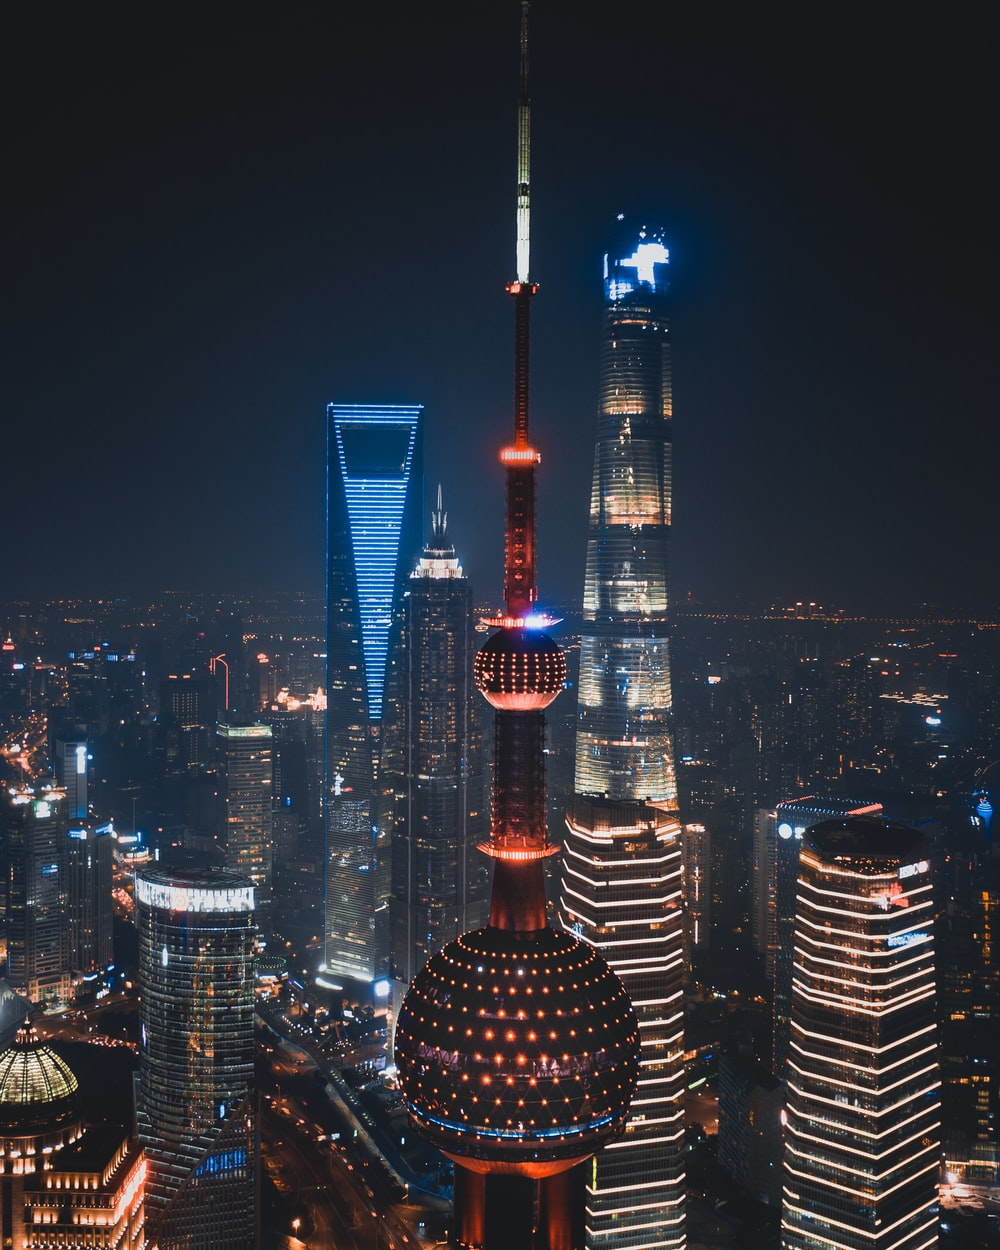 Oriental Pearl tower, China